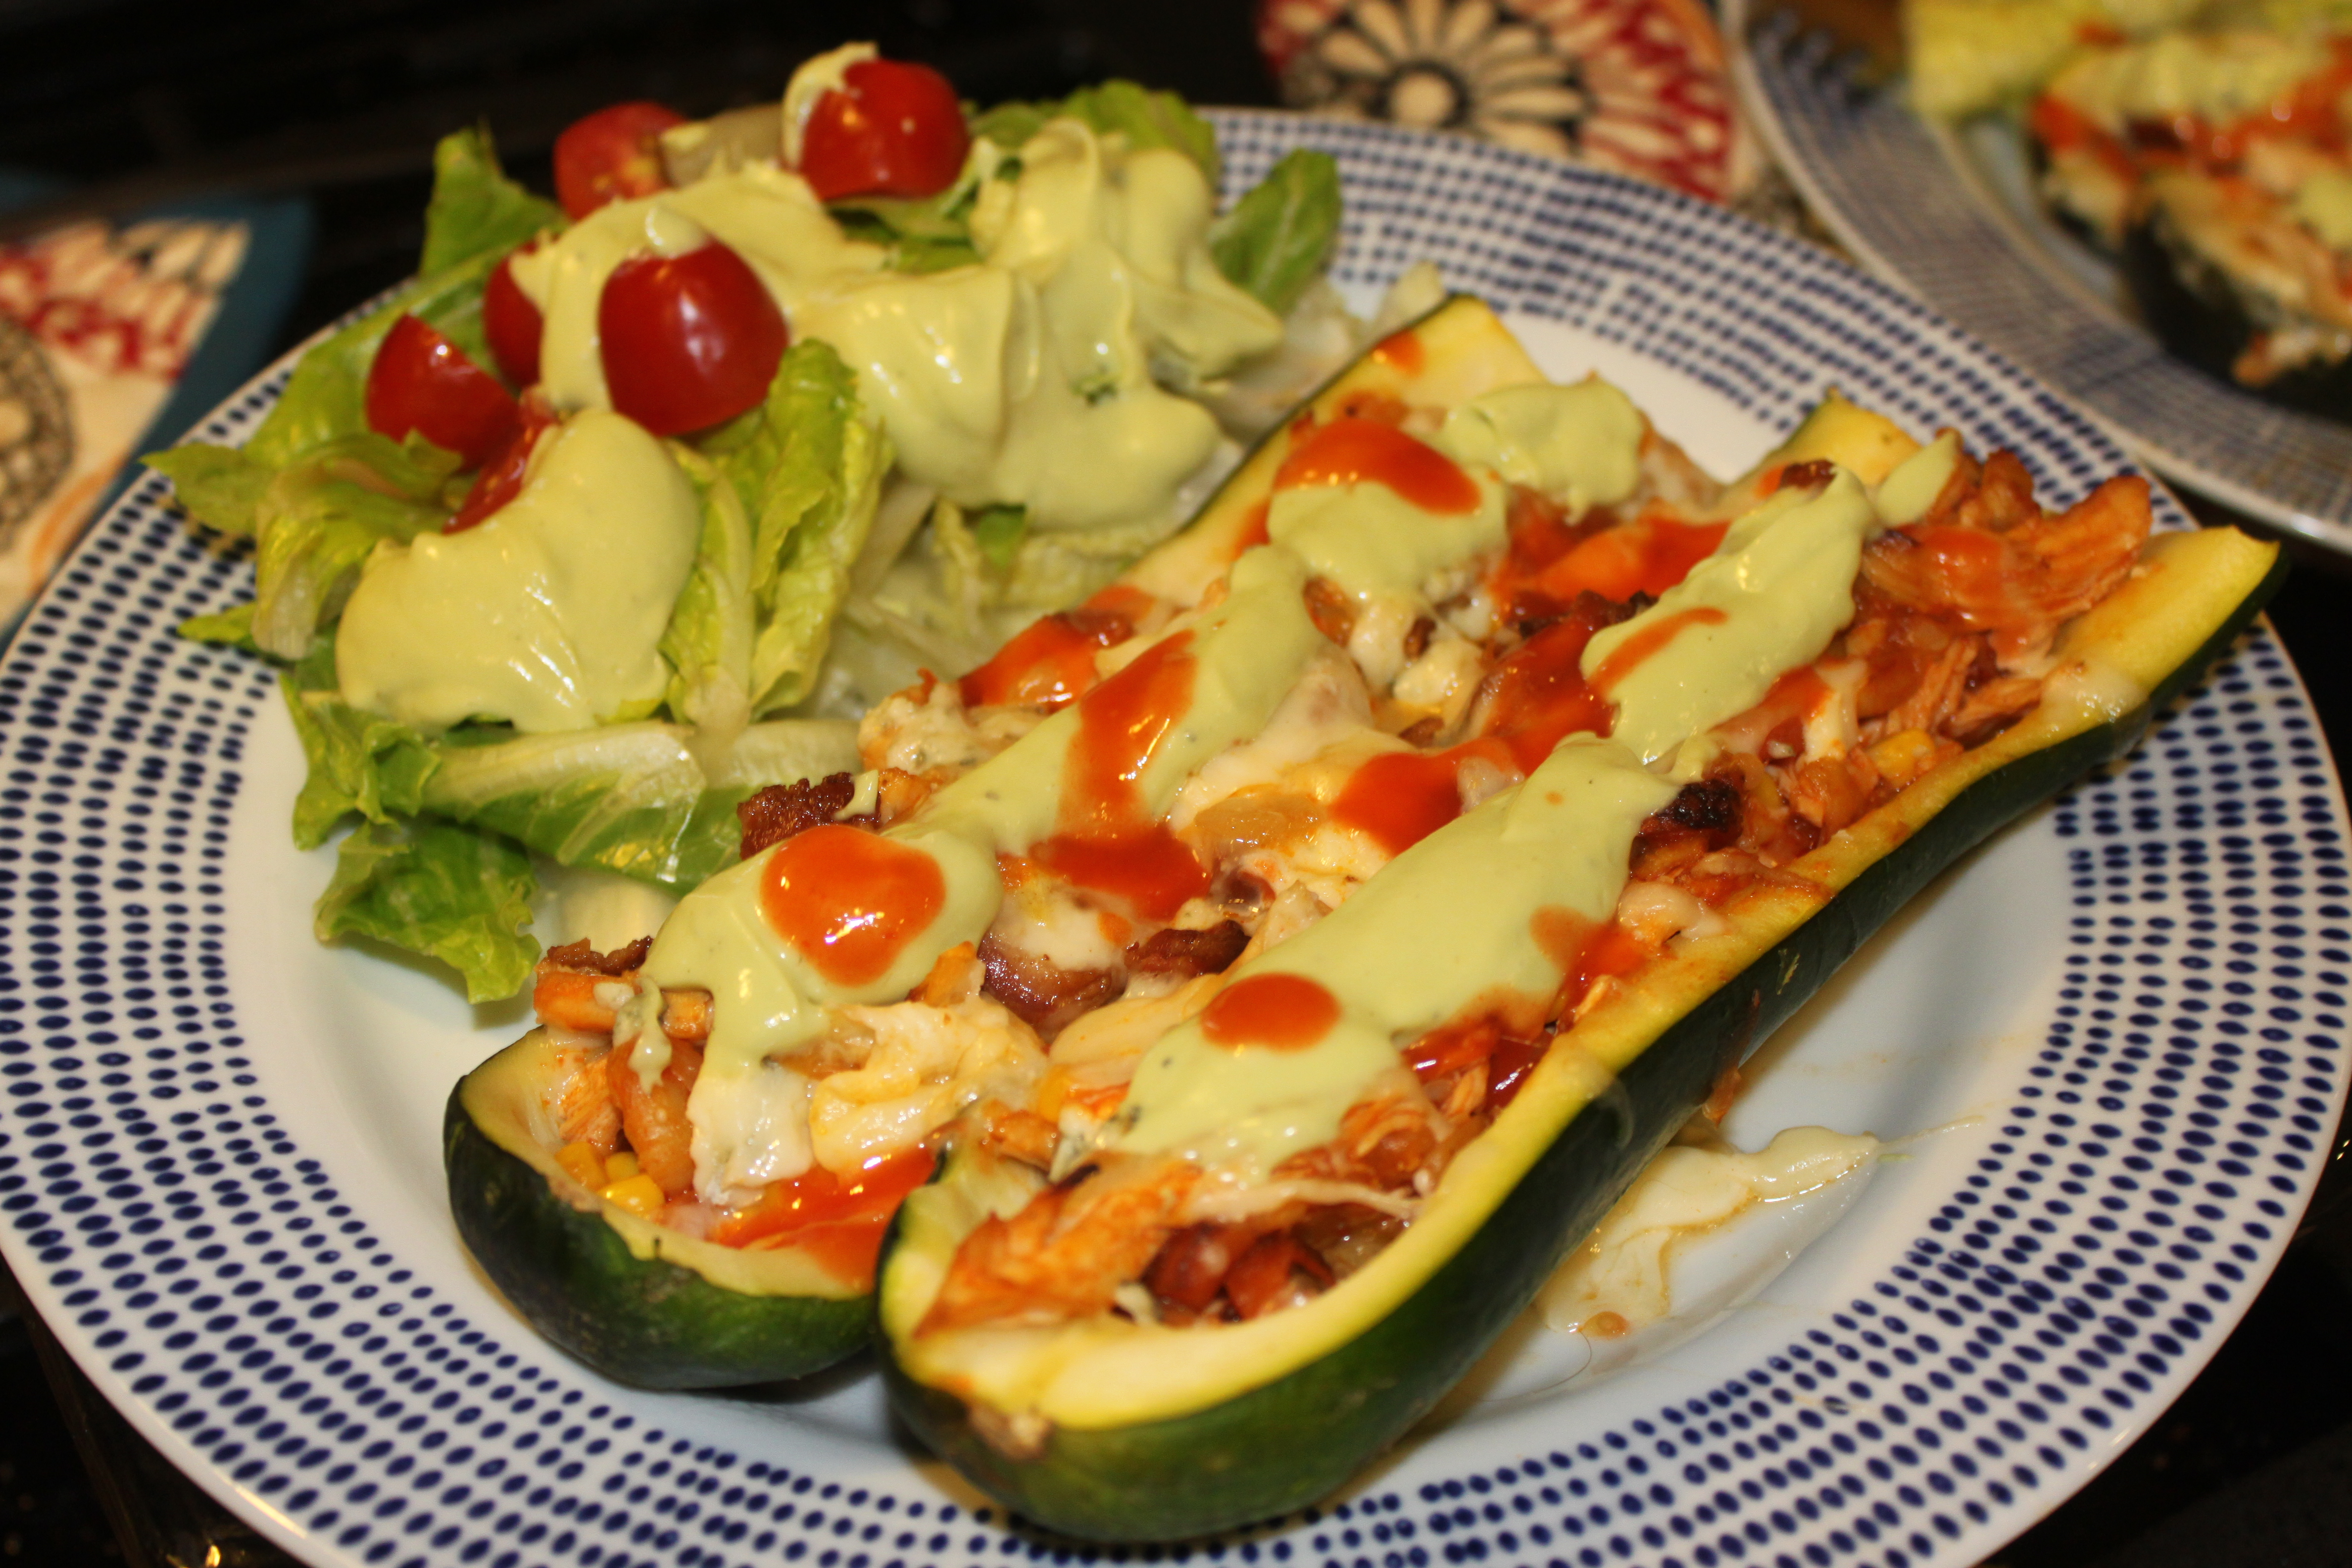 ... topped with Melted Cheese, Bacon and an Avocado Blue Cheese Dressing